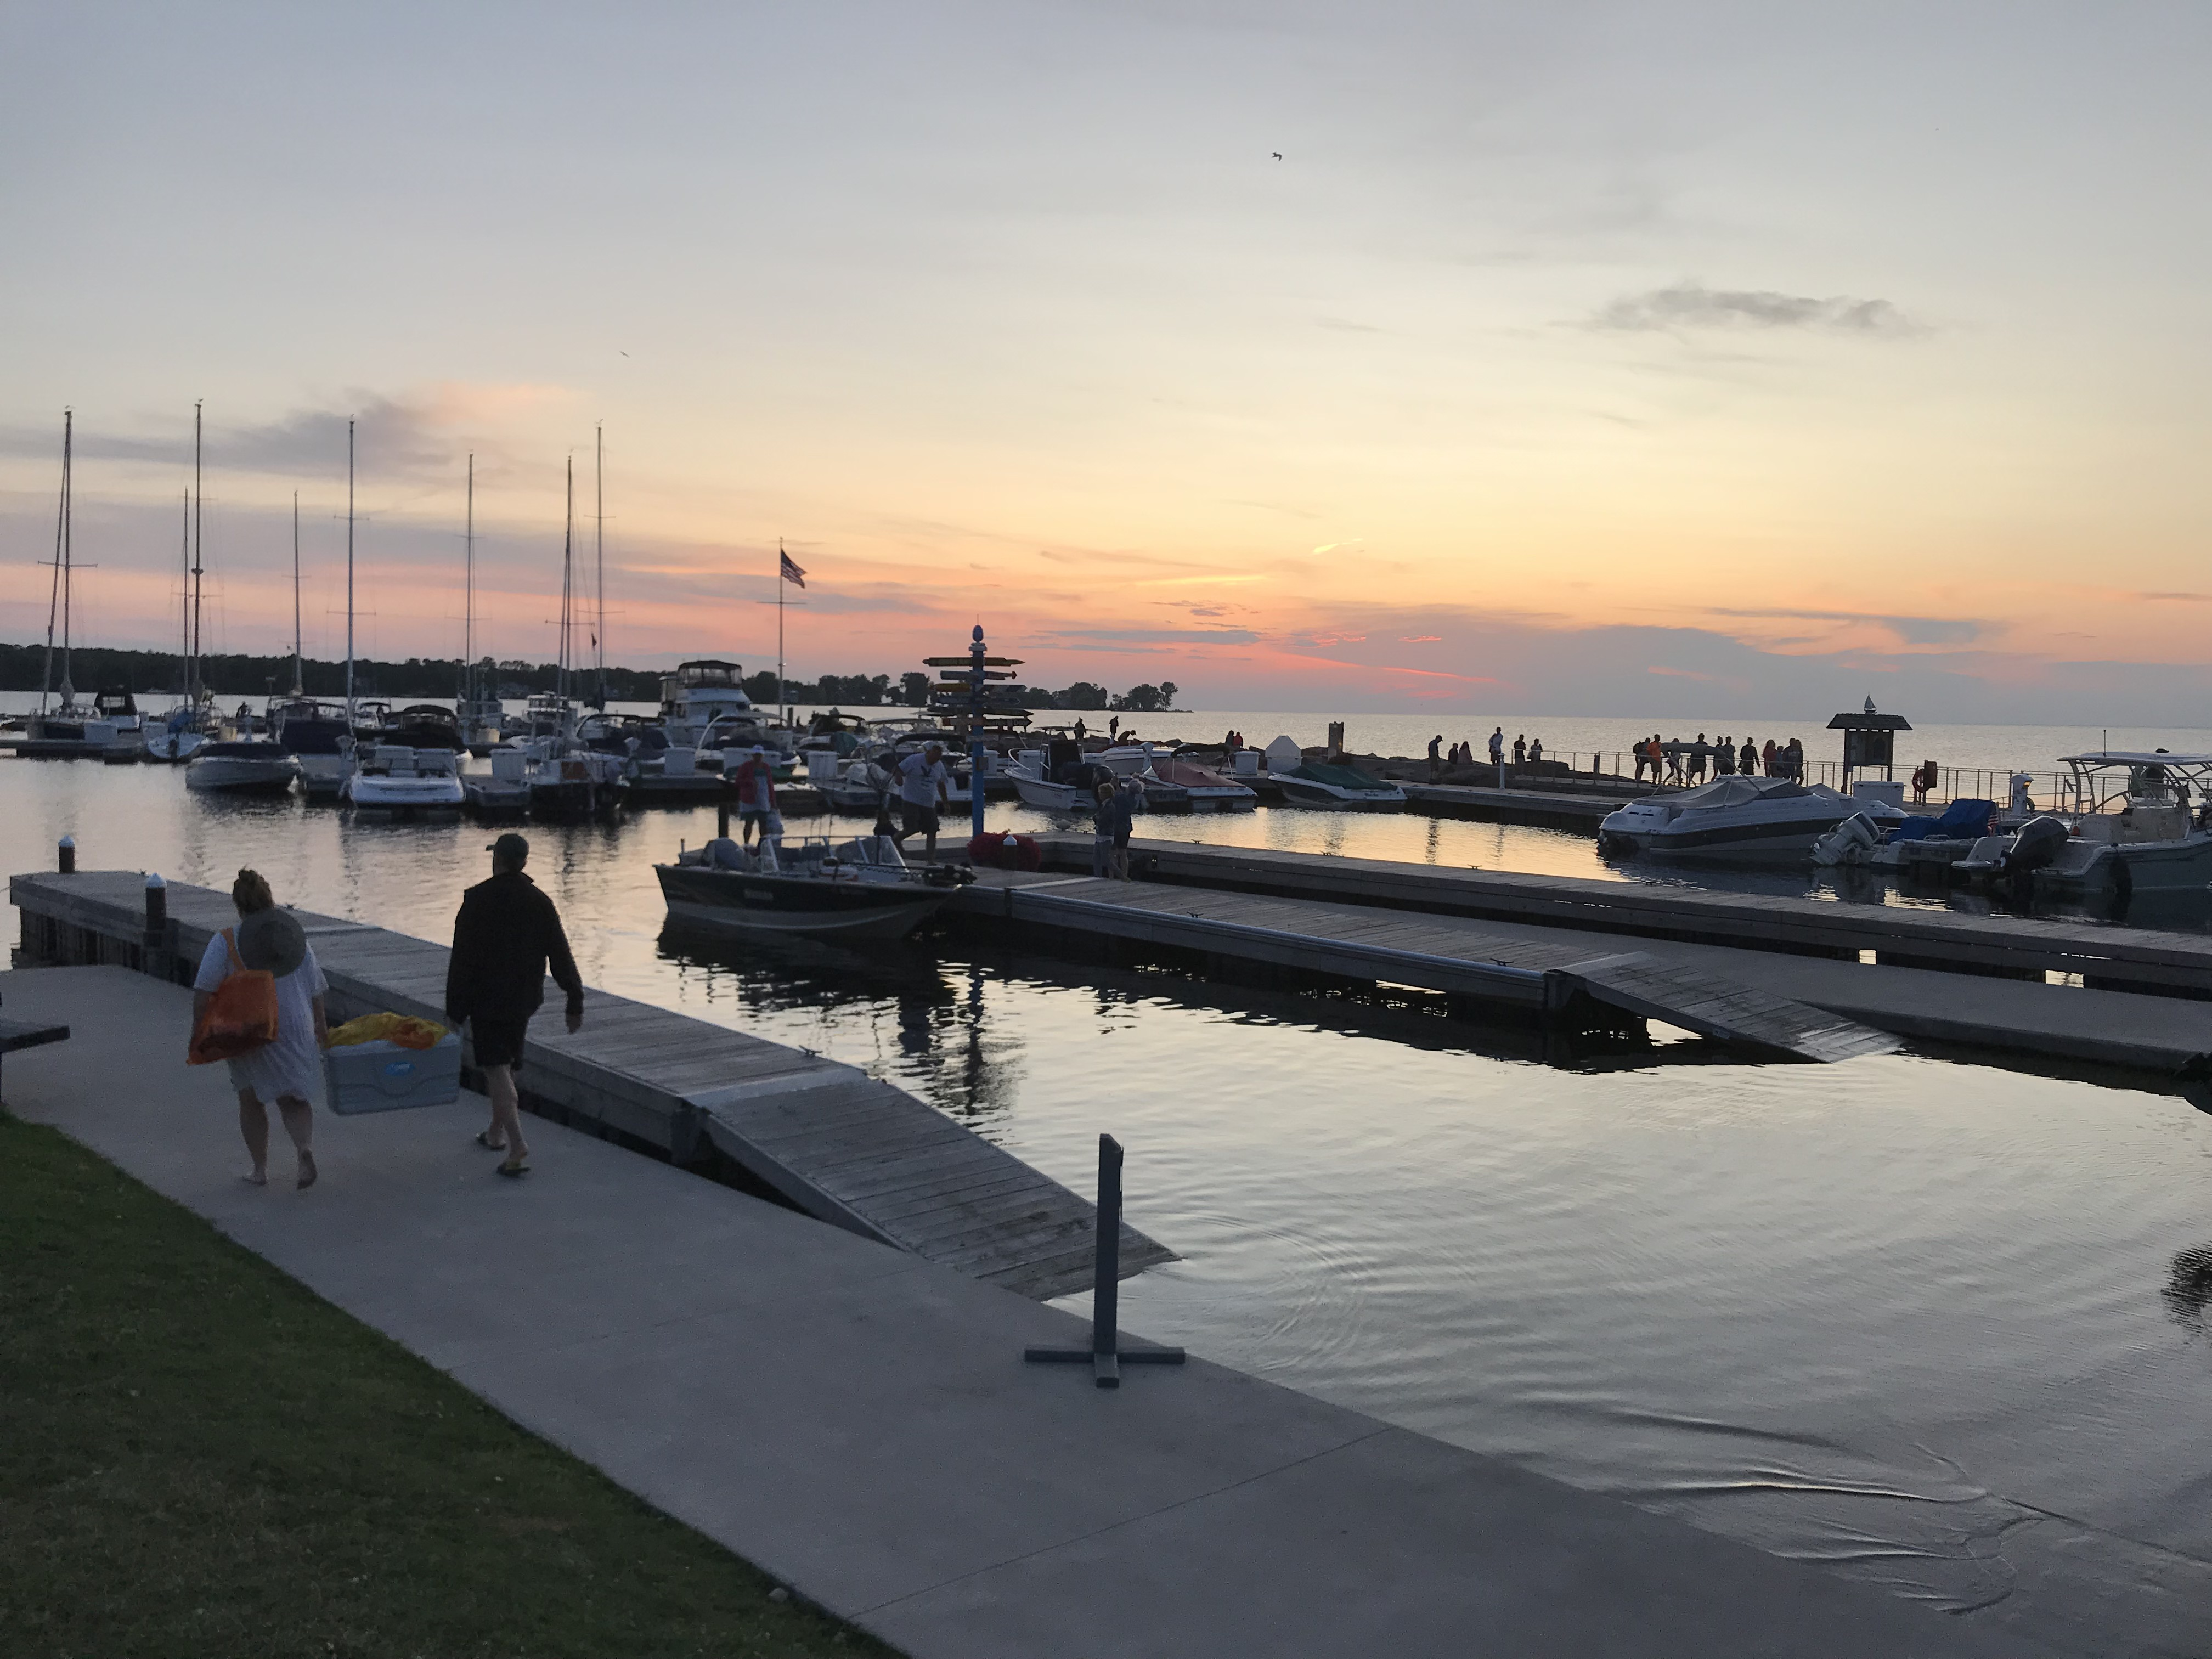 Bayside in Door County: Sturgeon Bay and Egg Harbor